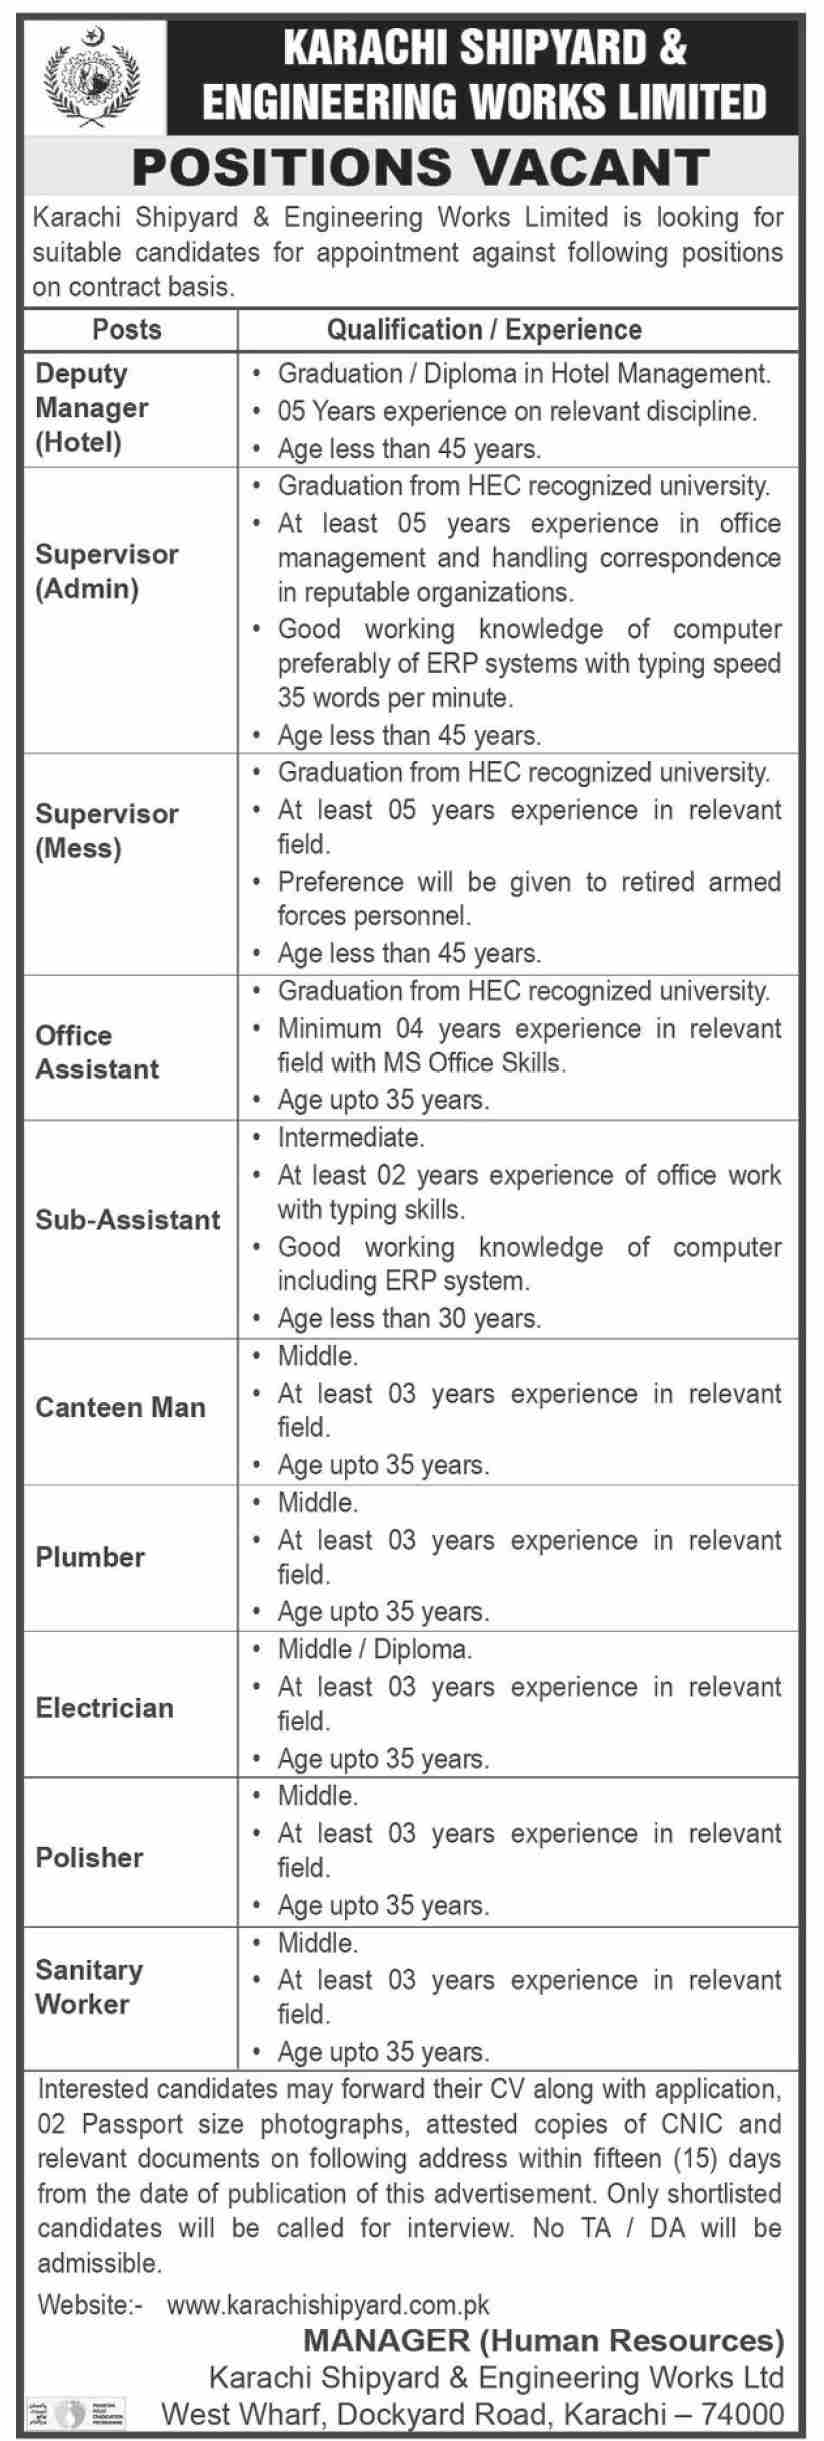 Jobs in Karachi Shipyard and Engineering Works Limited 2021